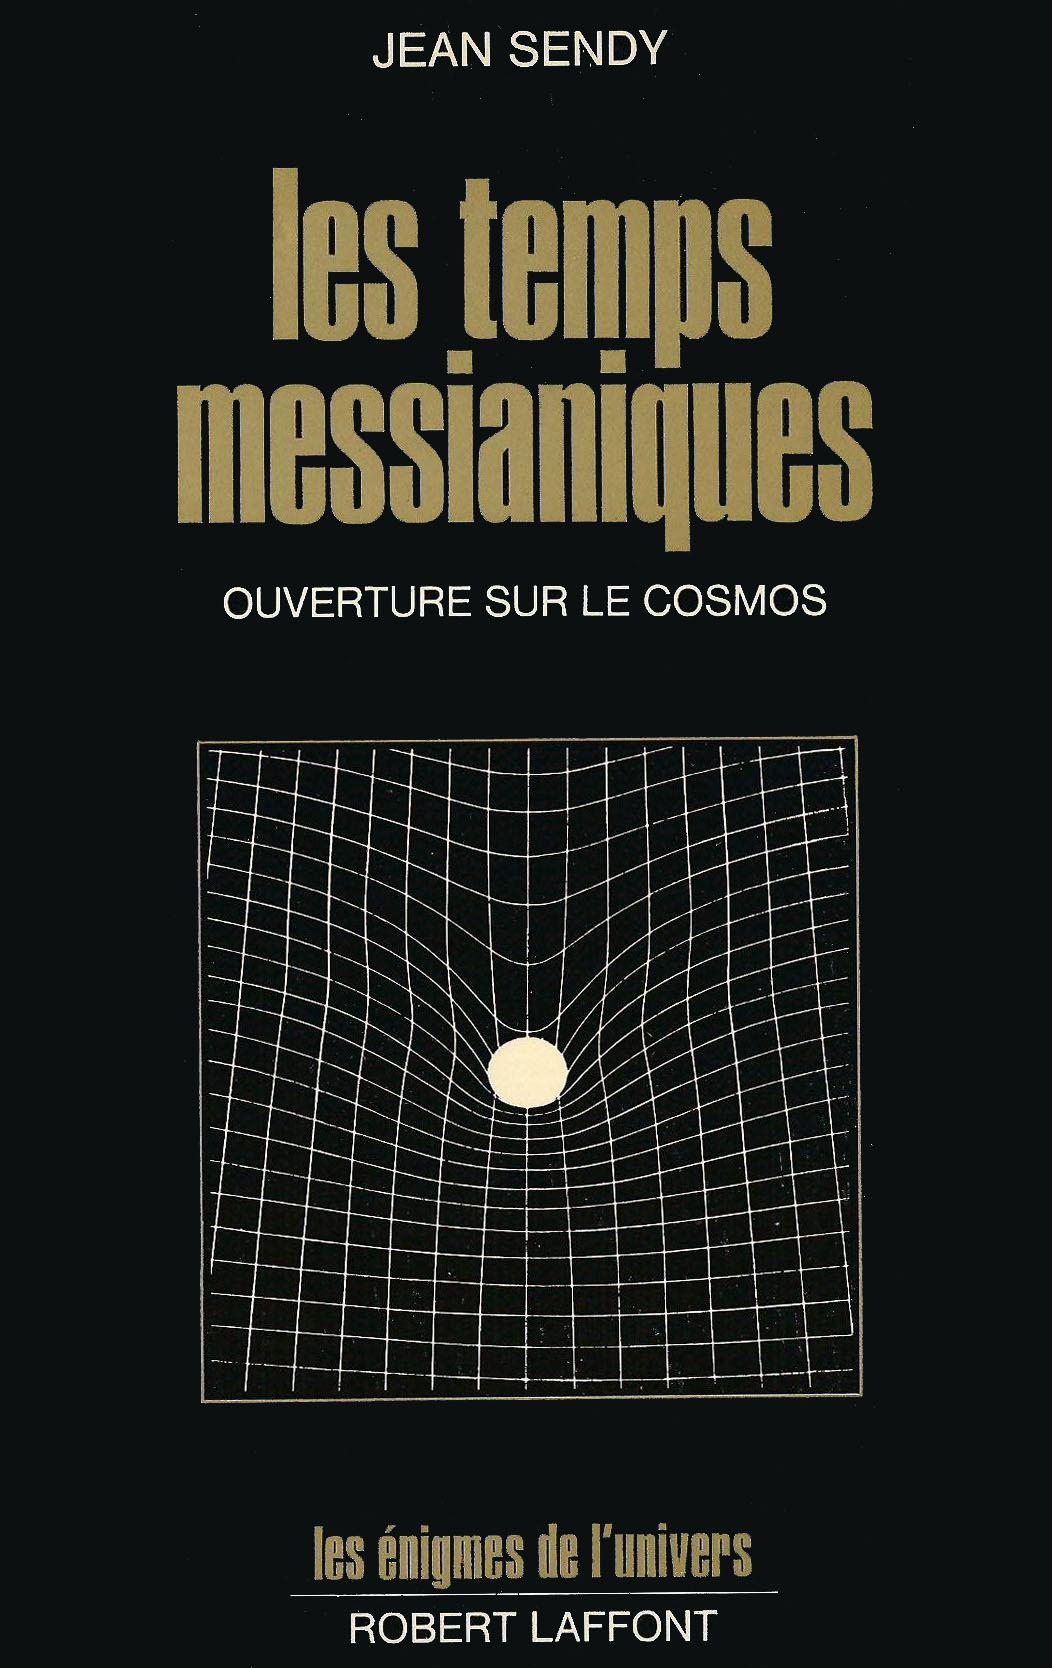 Les Temps Messianiques (front) by Jean Sendy (1975)